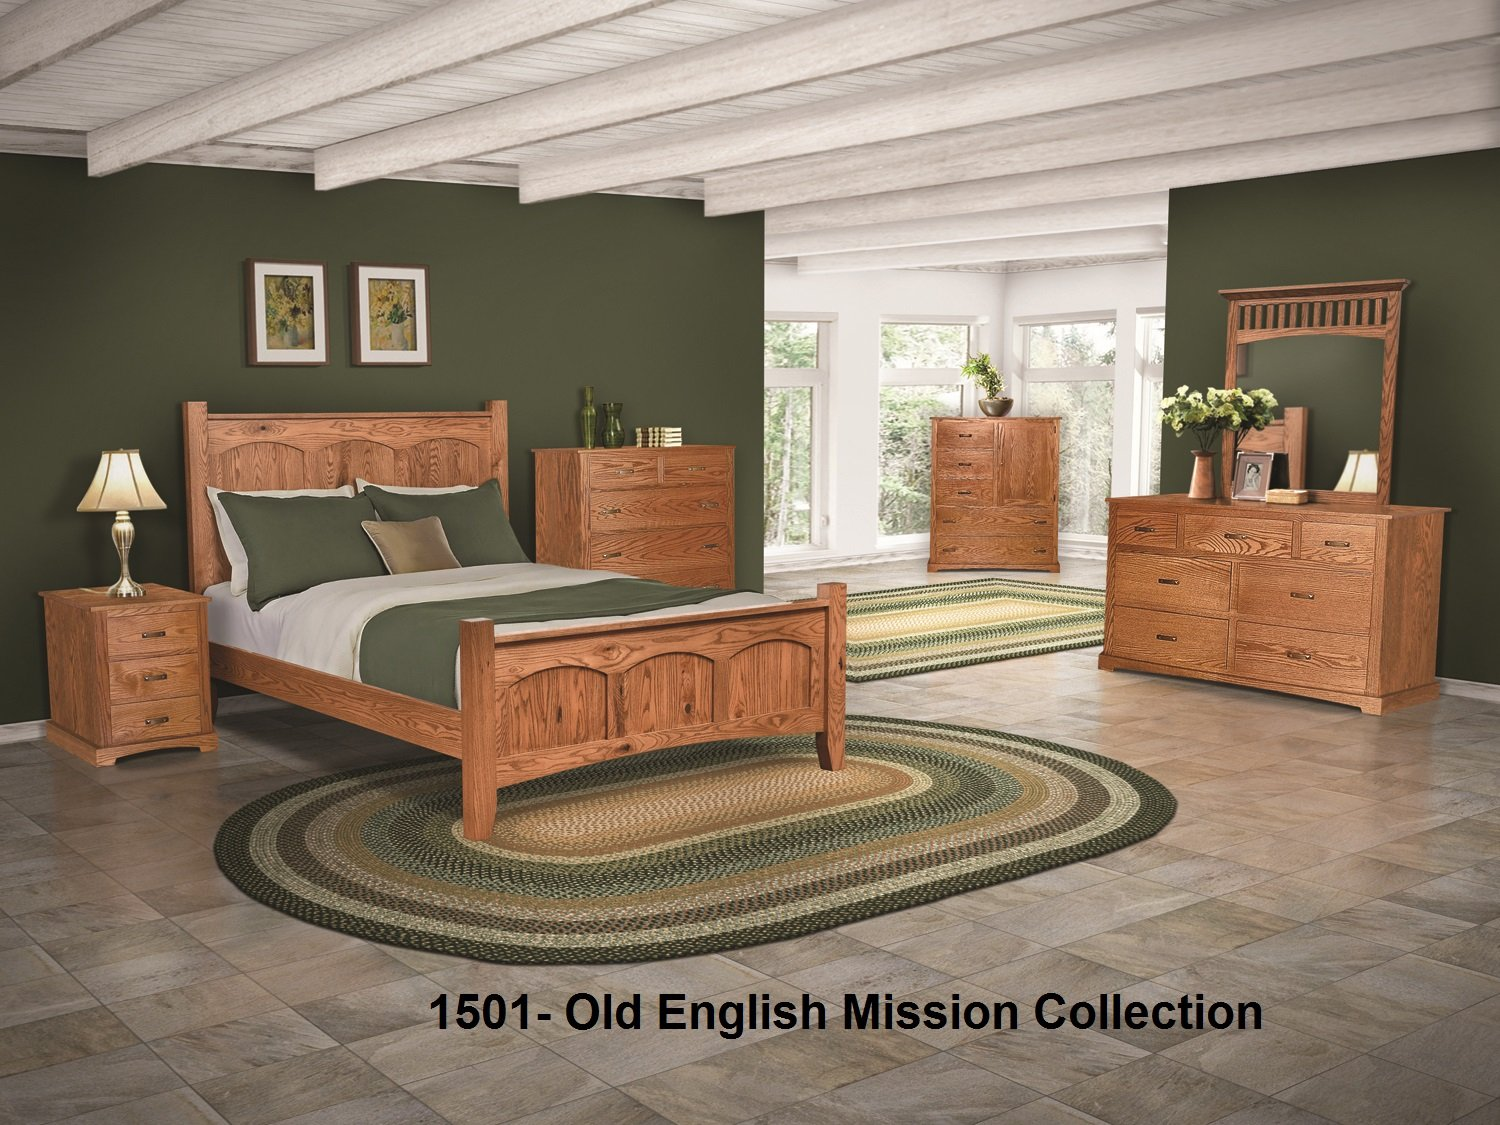 1501-300 Old English Mission Collection